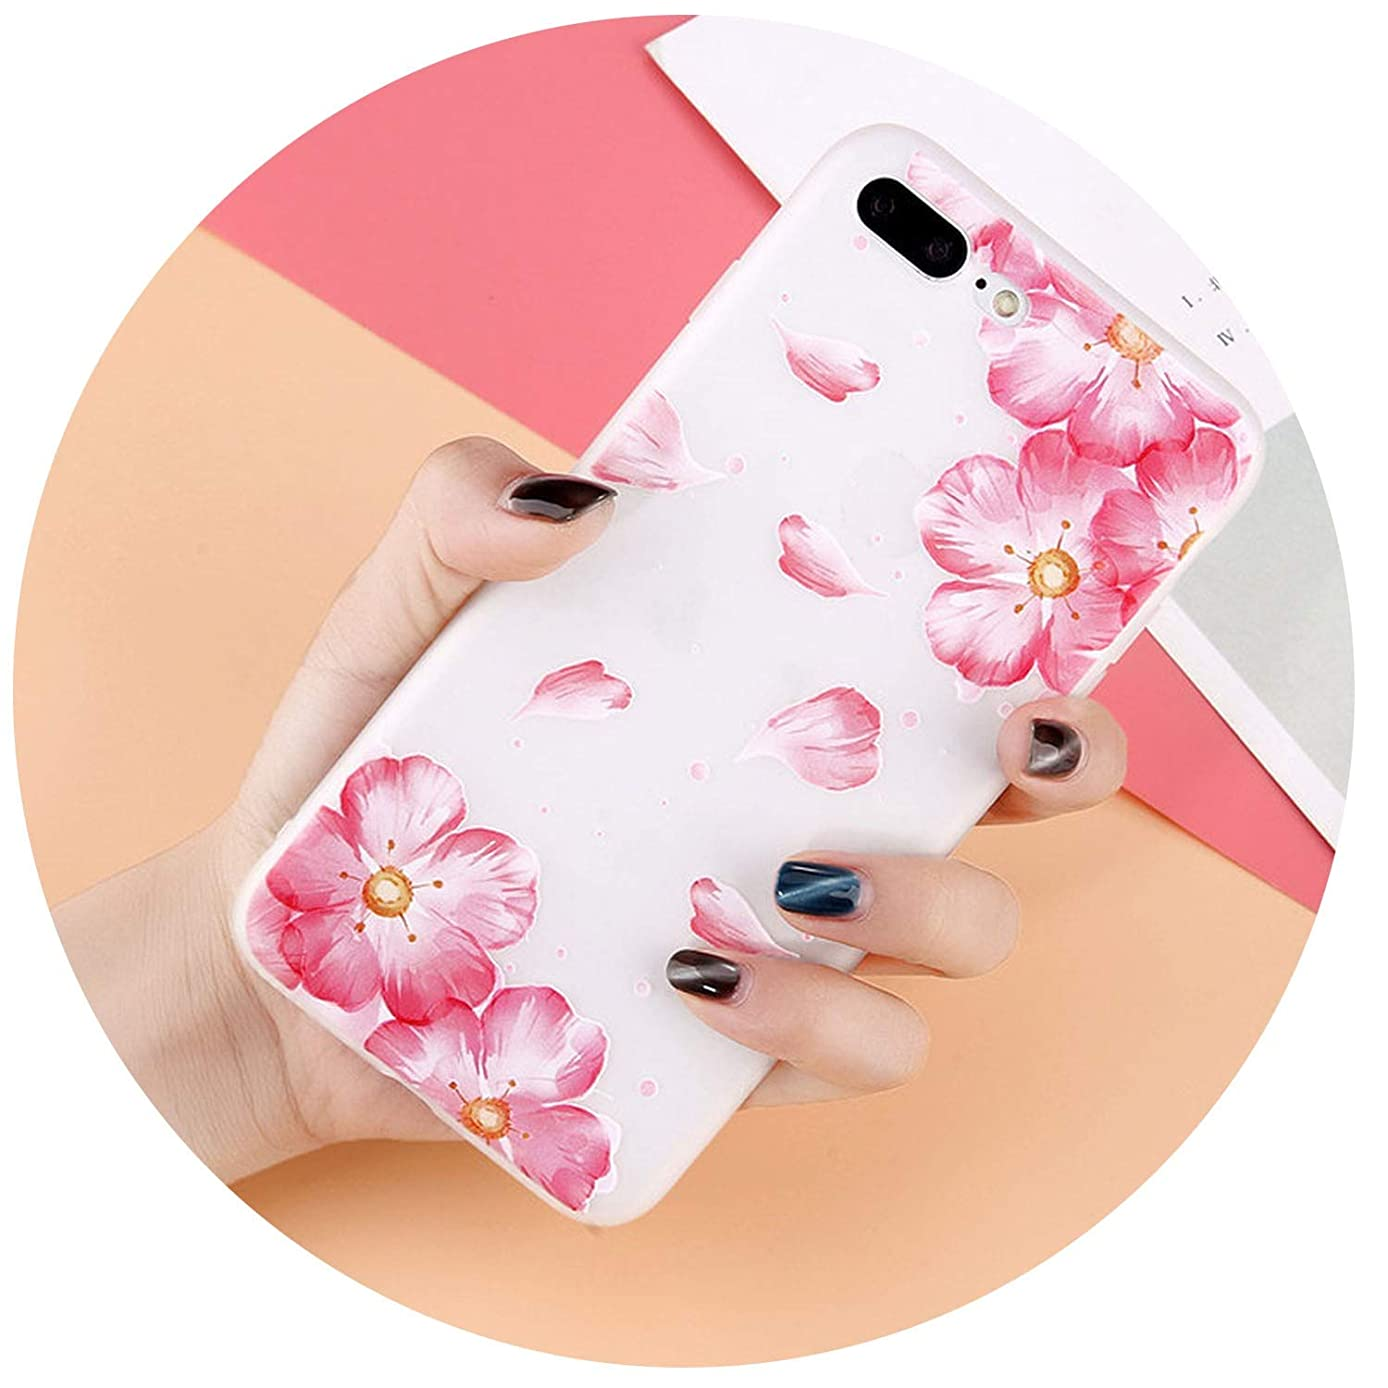 3D Relief Flower Phone Case for iPhone Xs Max XR X 8 7 Plus Floral Cases for iPhone 6S 6 Plus 5 5s SE Soft TPU Back Cover,7554,for 6 Plus 6s Plus